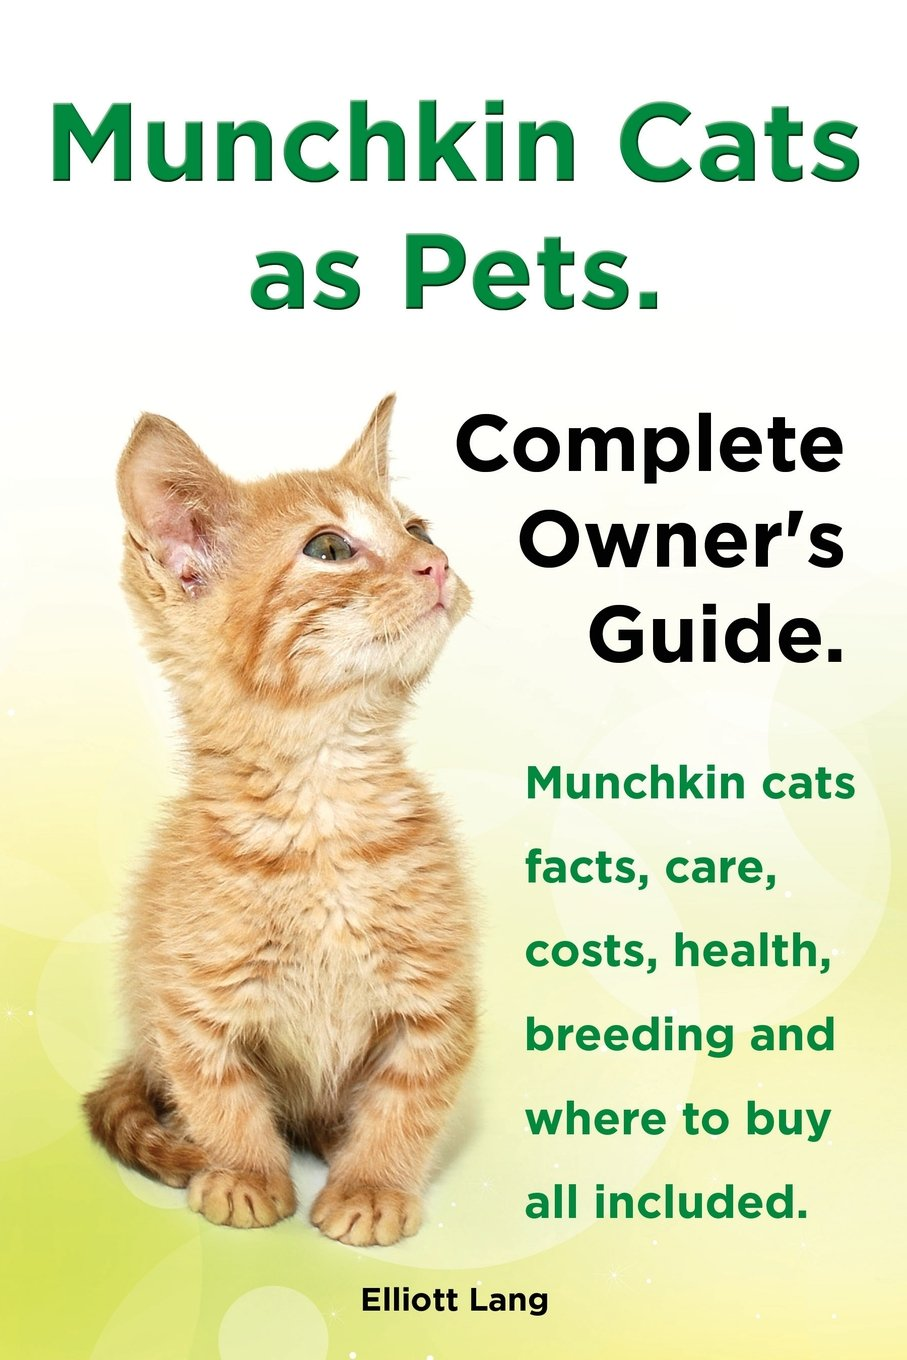 Munchkin Cats as Pets. Munchkin Cats Facts, Care, Costs, Health, Breeding and Where to Buy All Included. Complete Owner's Guide.